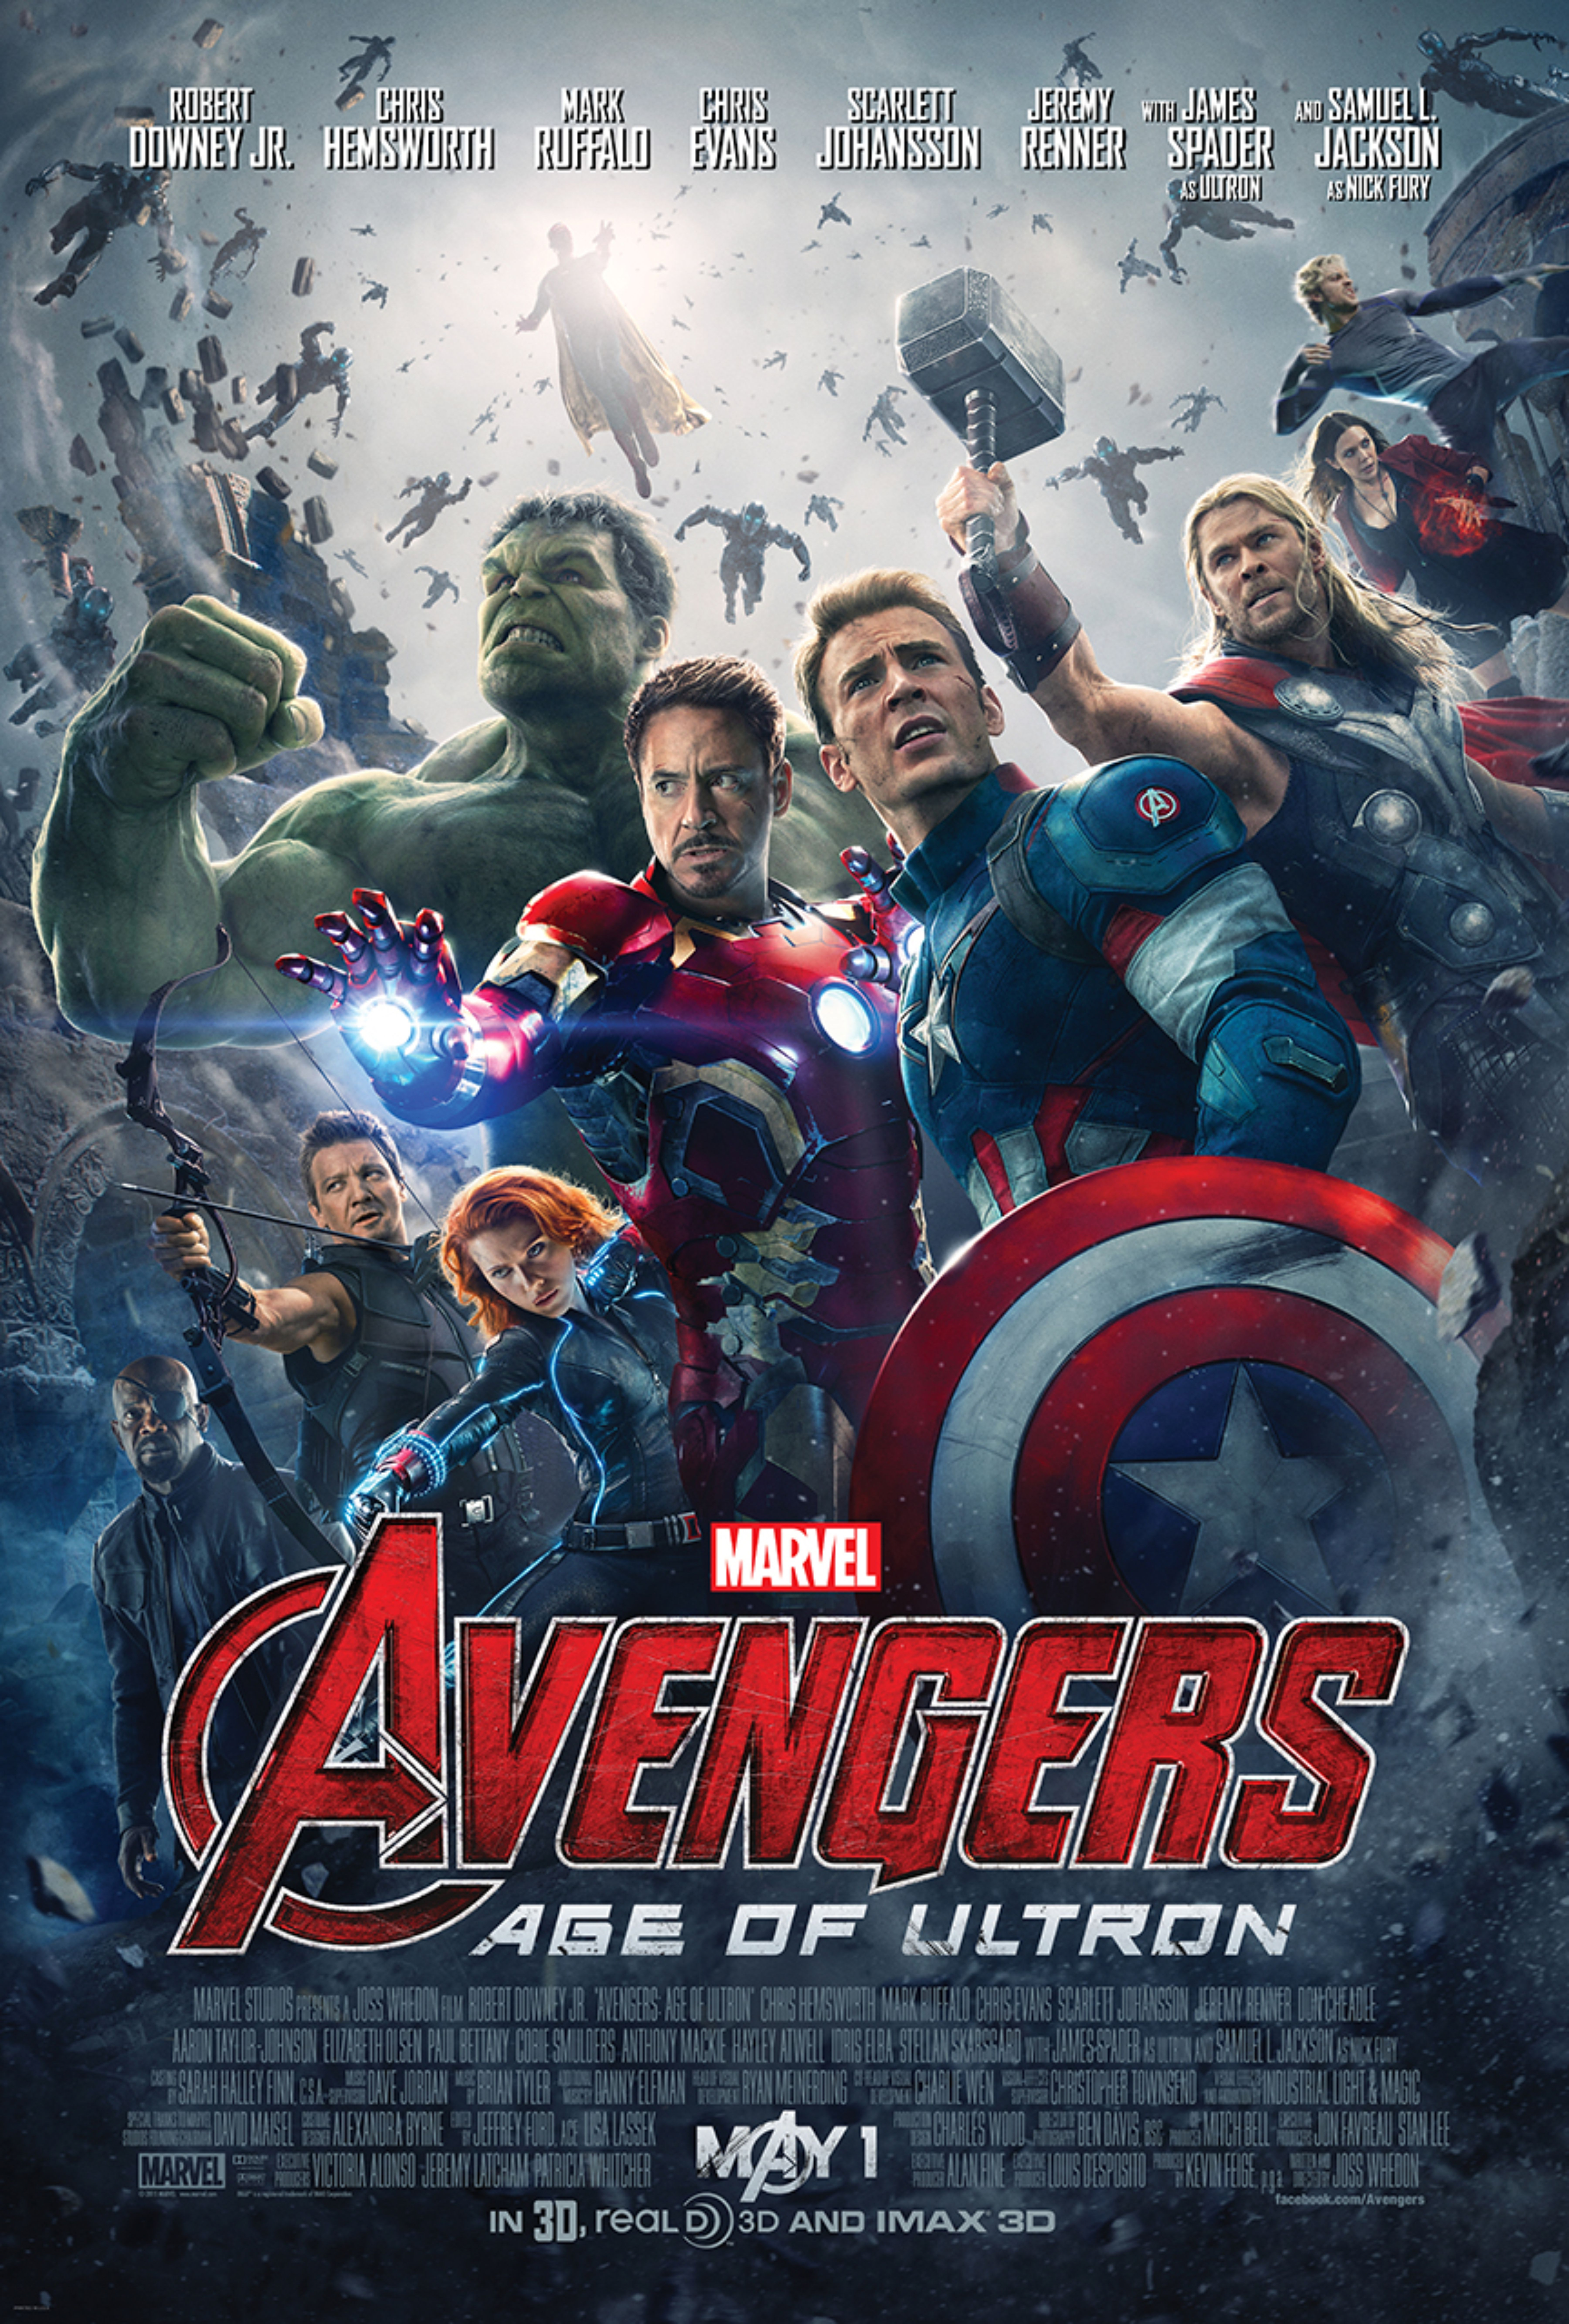 the avengers movie review essay